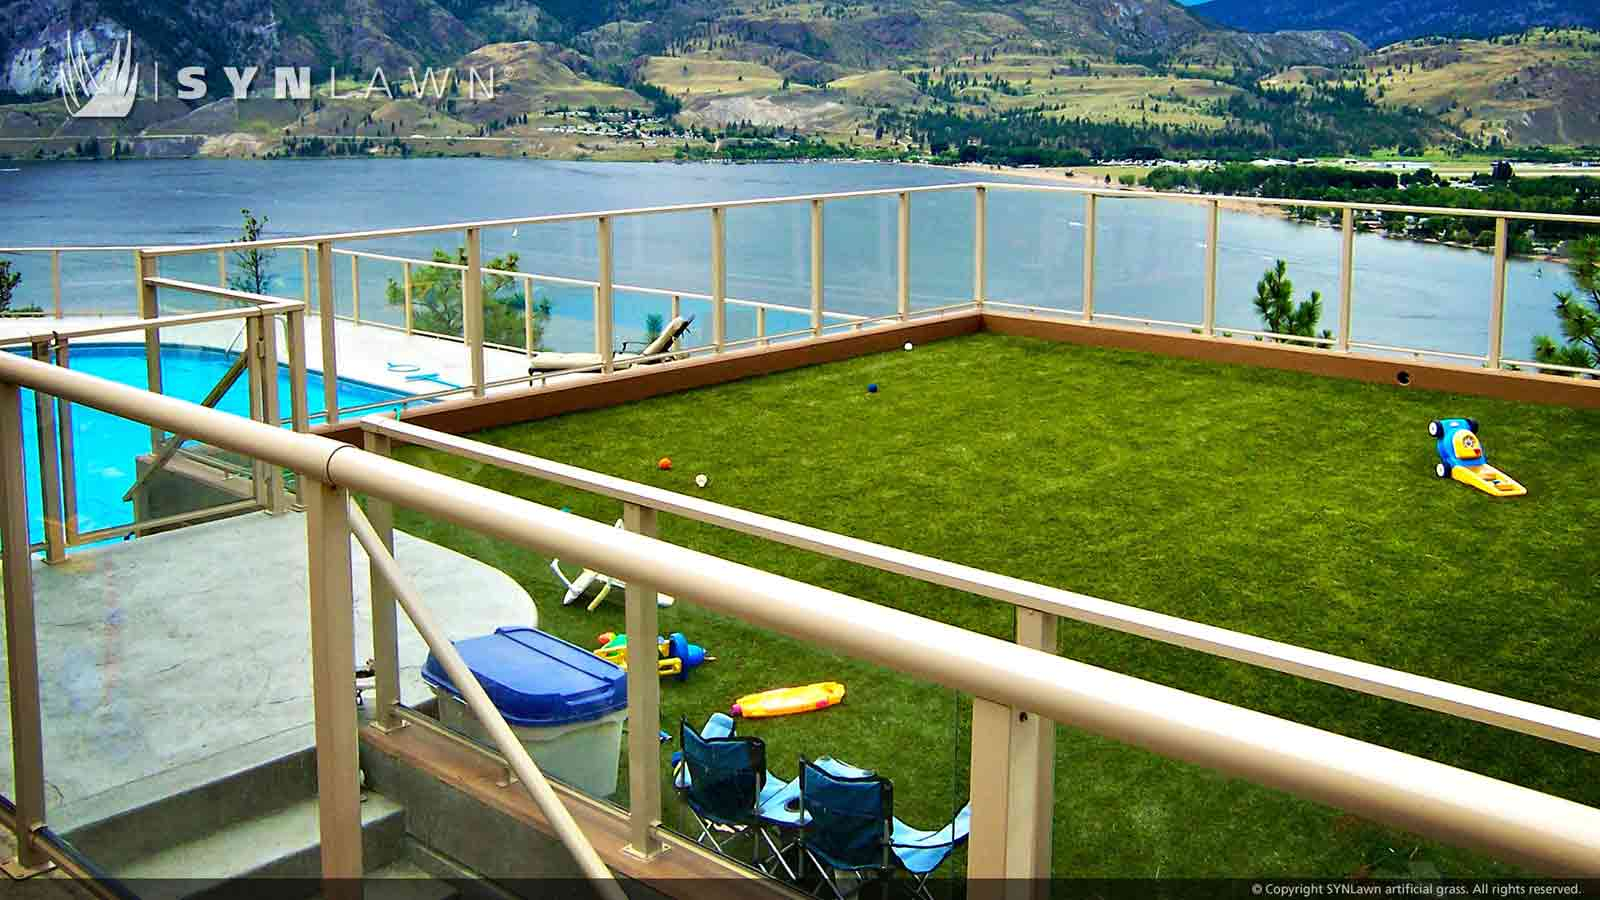 SYNLawn rooftop artificial grass overlooking the Mississippi River